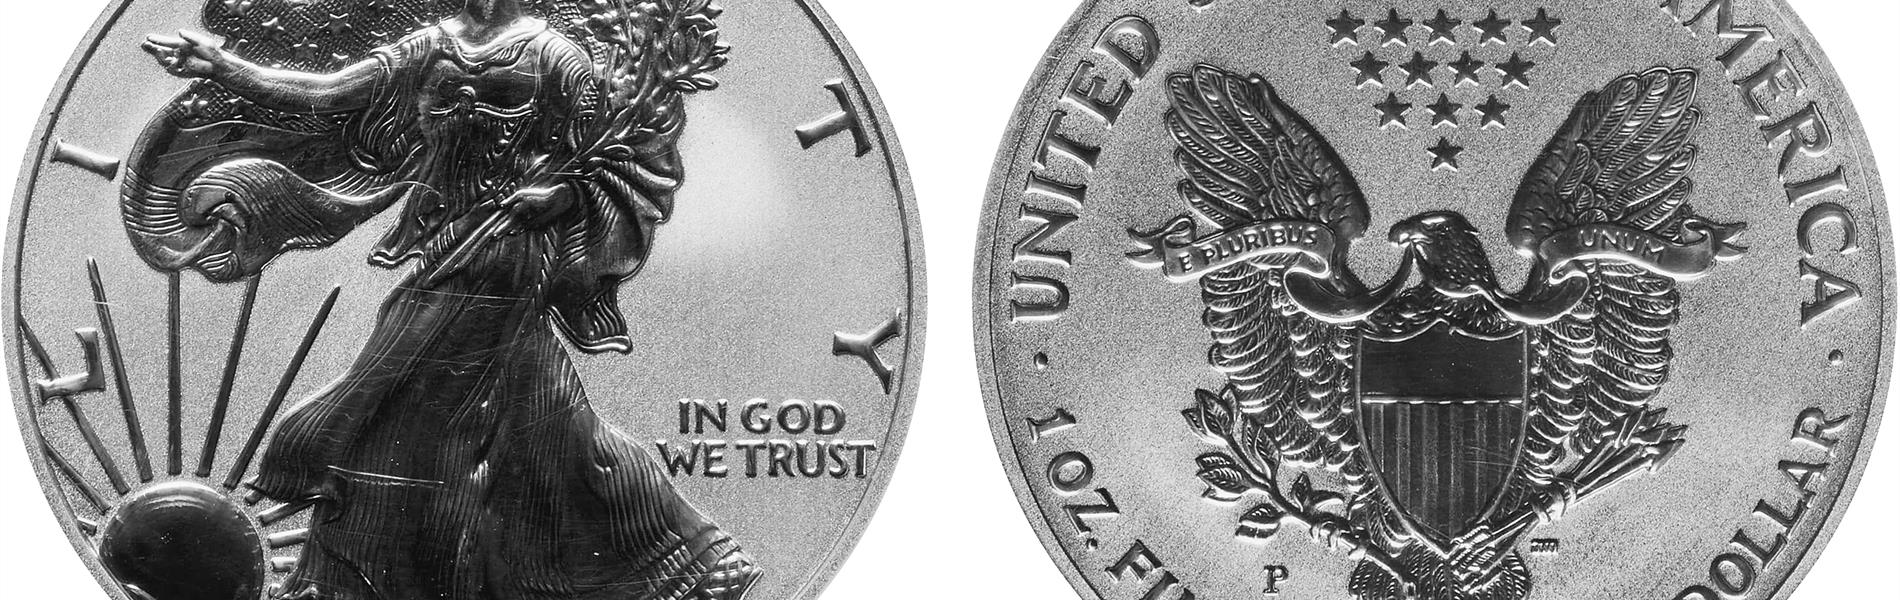 2006-p-reverse-proof-silver-eagle-merged